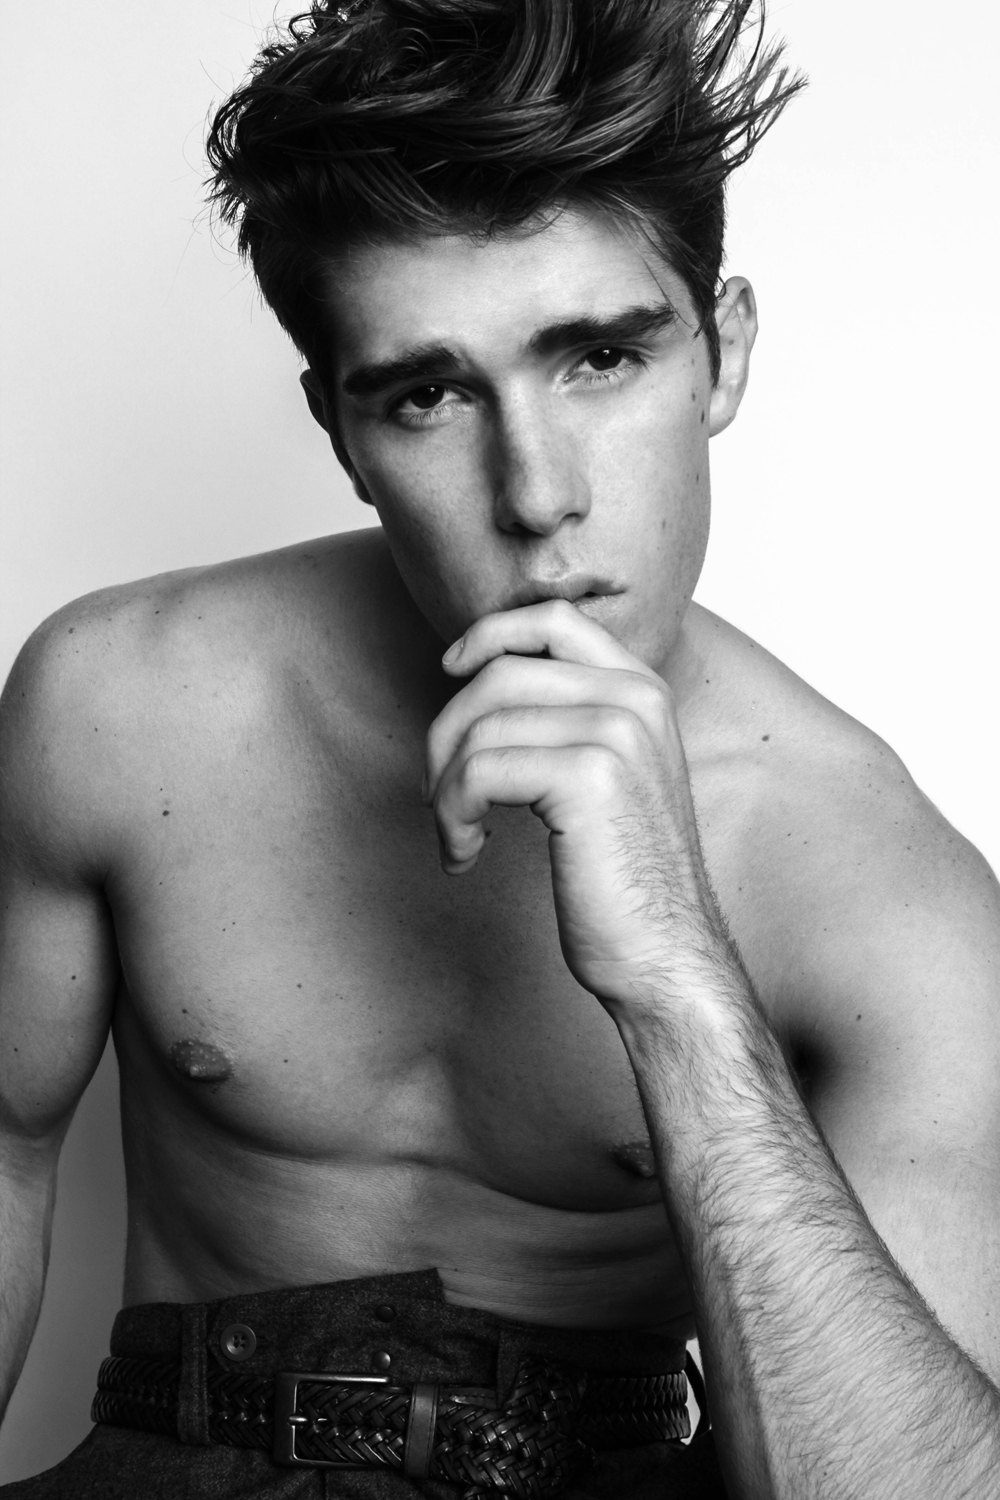 Judd Gross By Malcolm Bacani PnV Network1